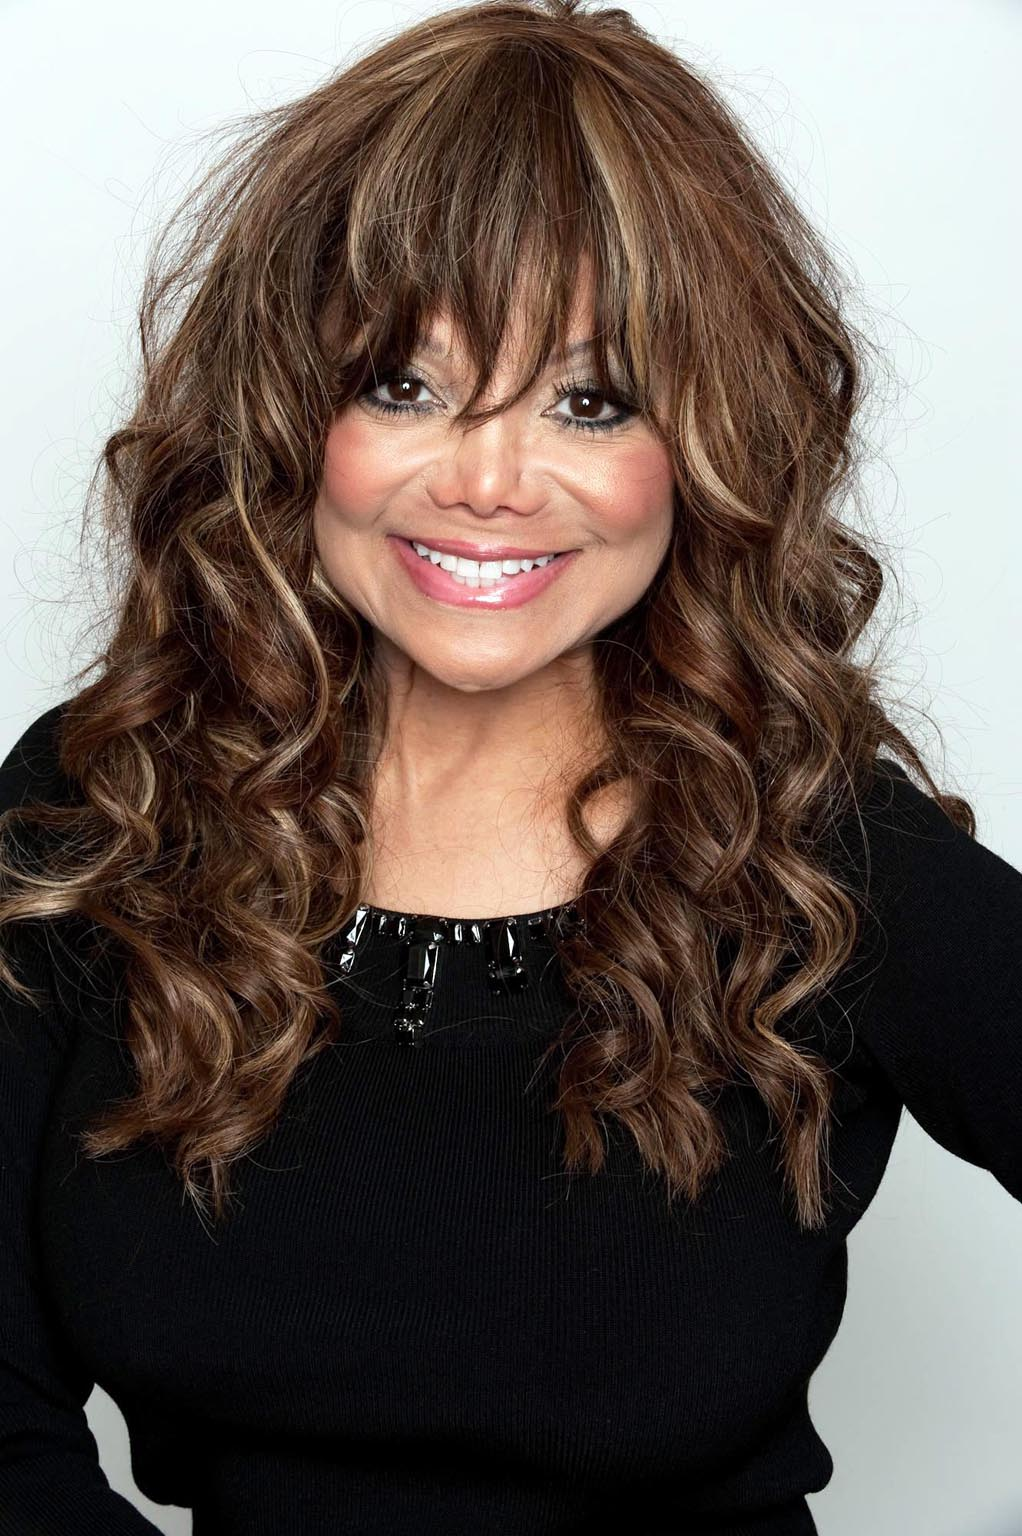 La Toya Jackson Photo Gallery 14 Best La Toya Jackson